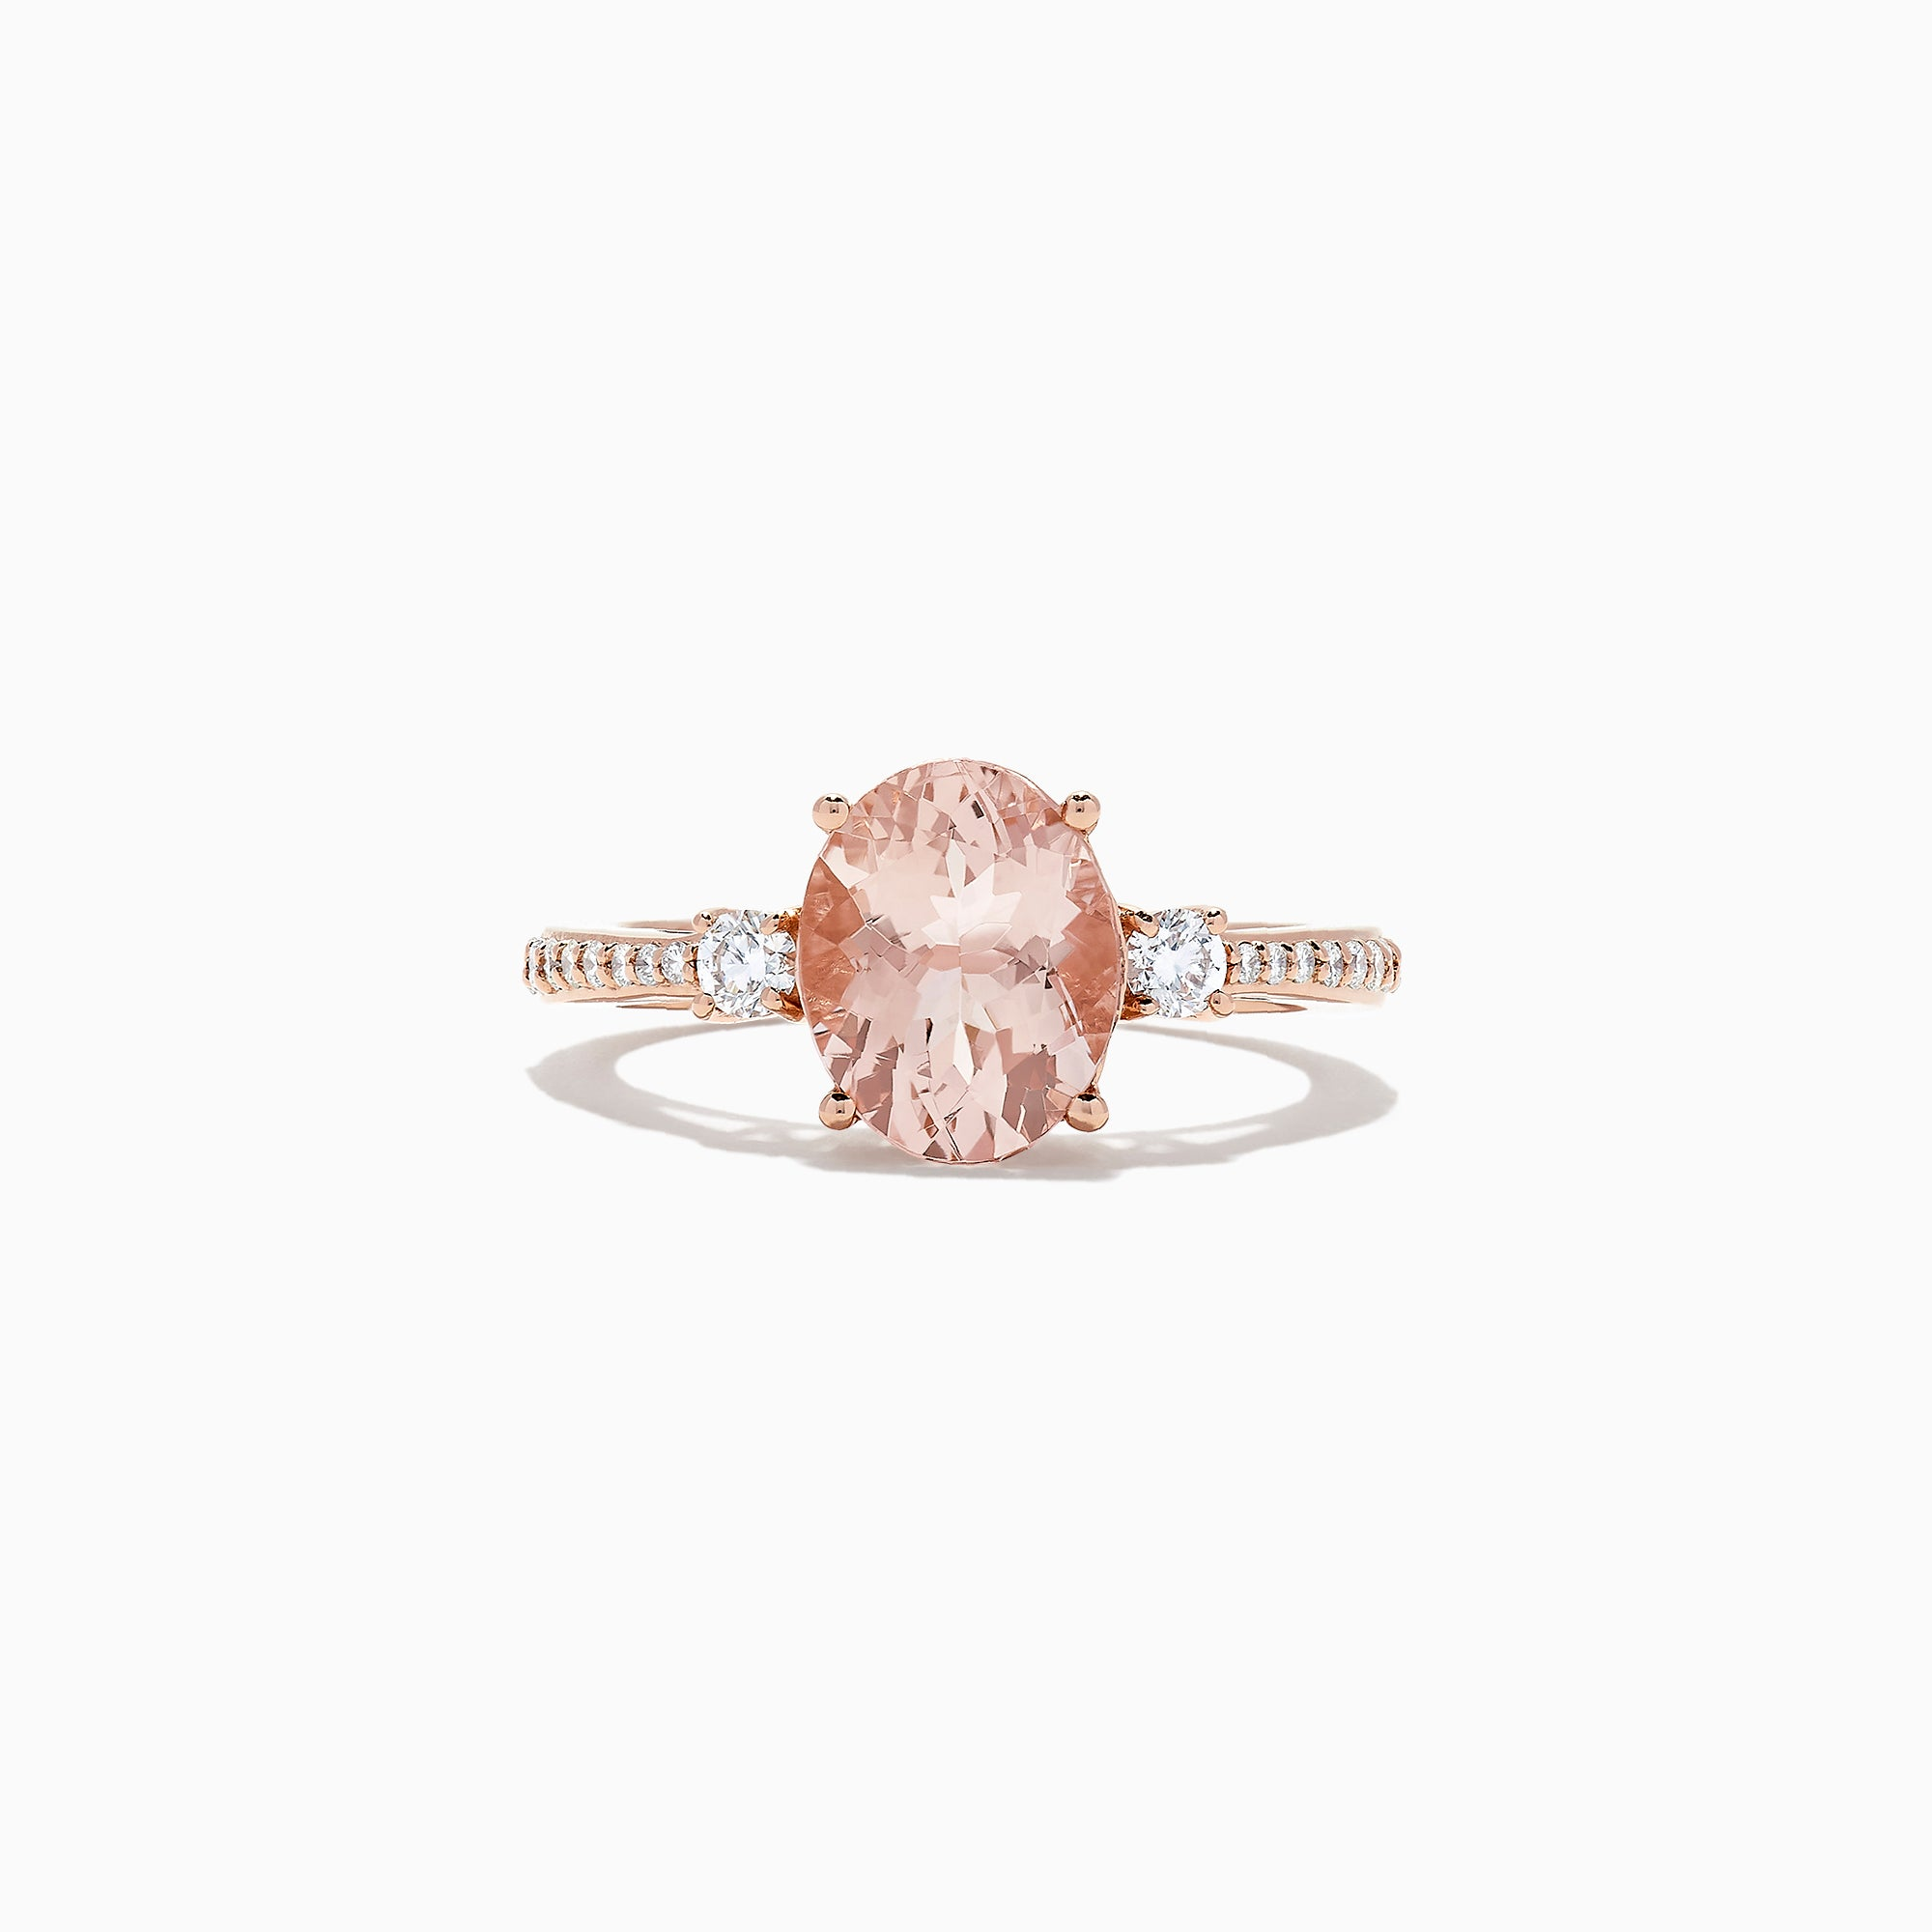 Effy Blush 14K Rose Gold Morganite and Diamond Ring, 2.64 TCW